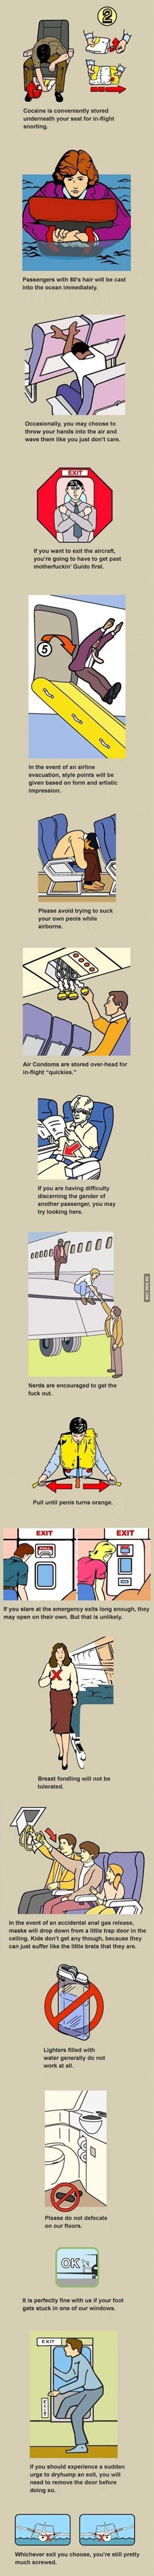 Airline safety instructions explained